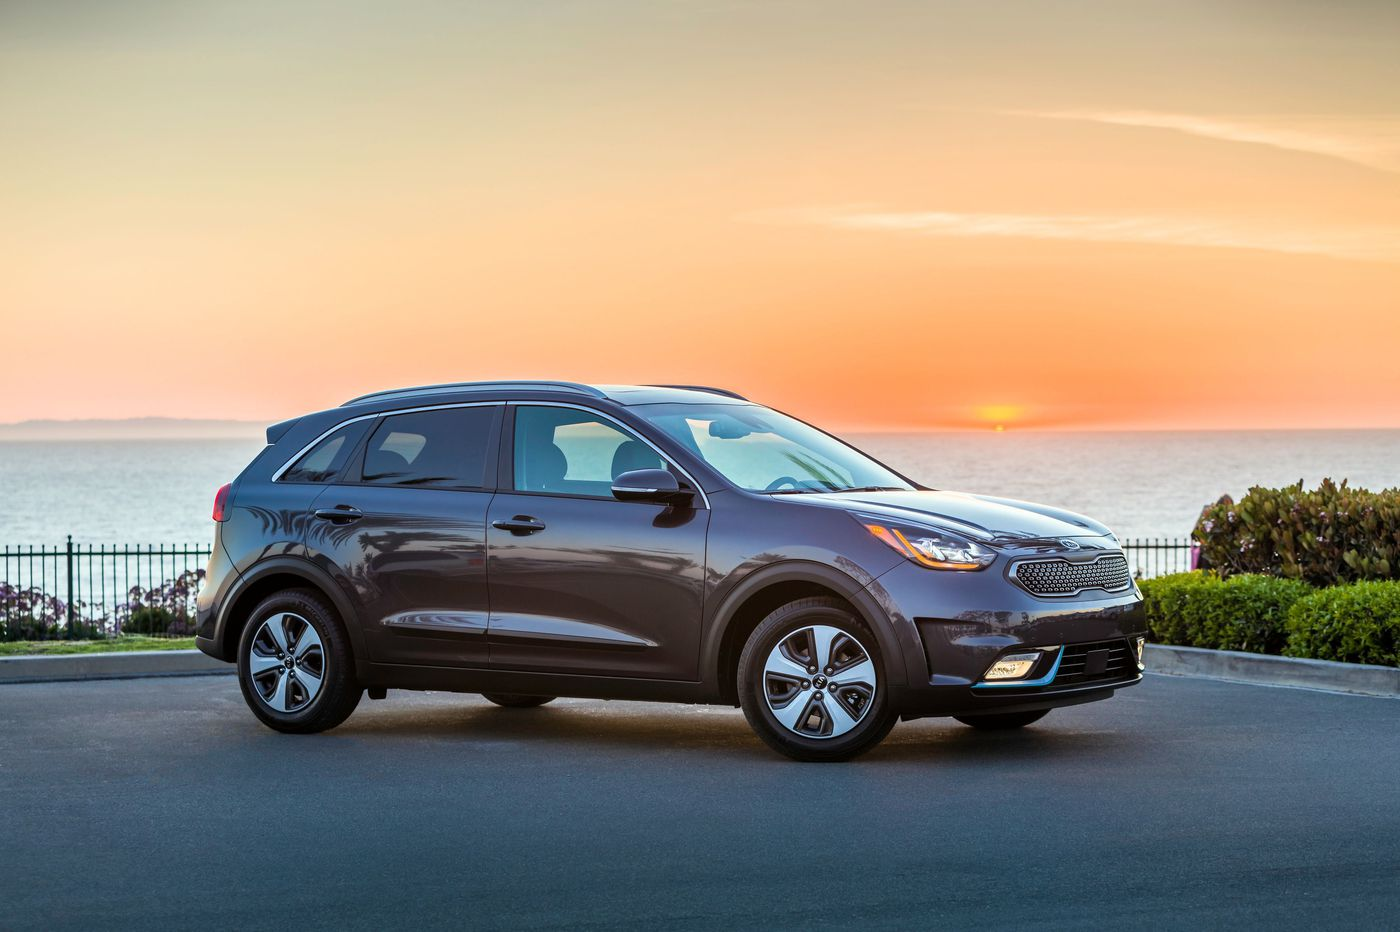 2019 Kia Niro Phev Offers E And Savings After You Pay The Admission Price